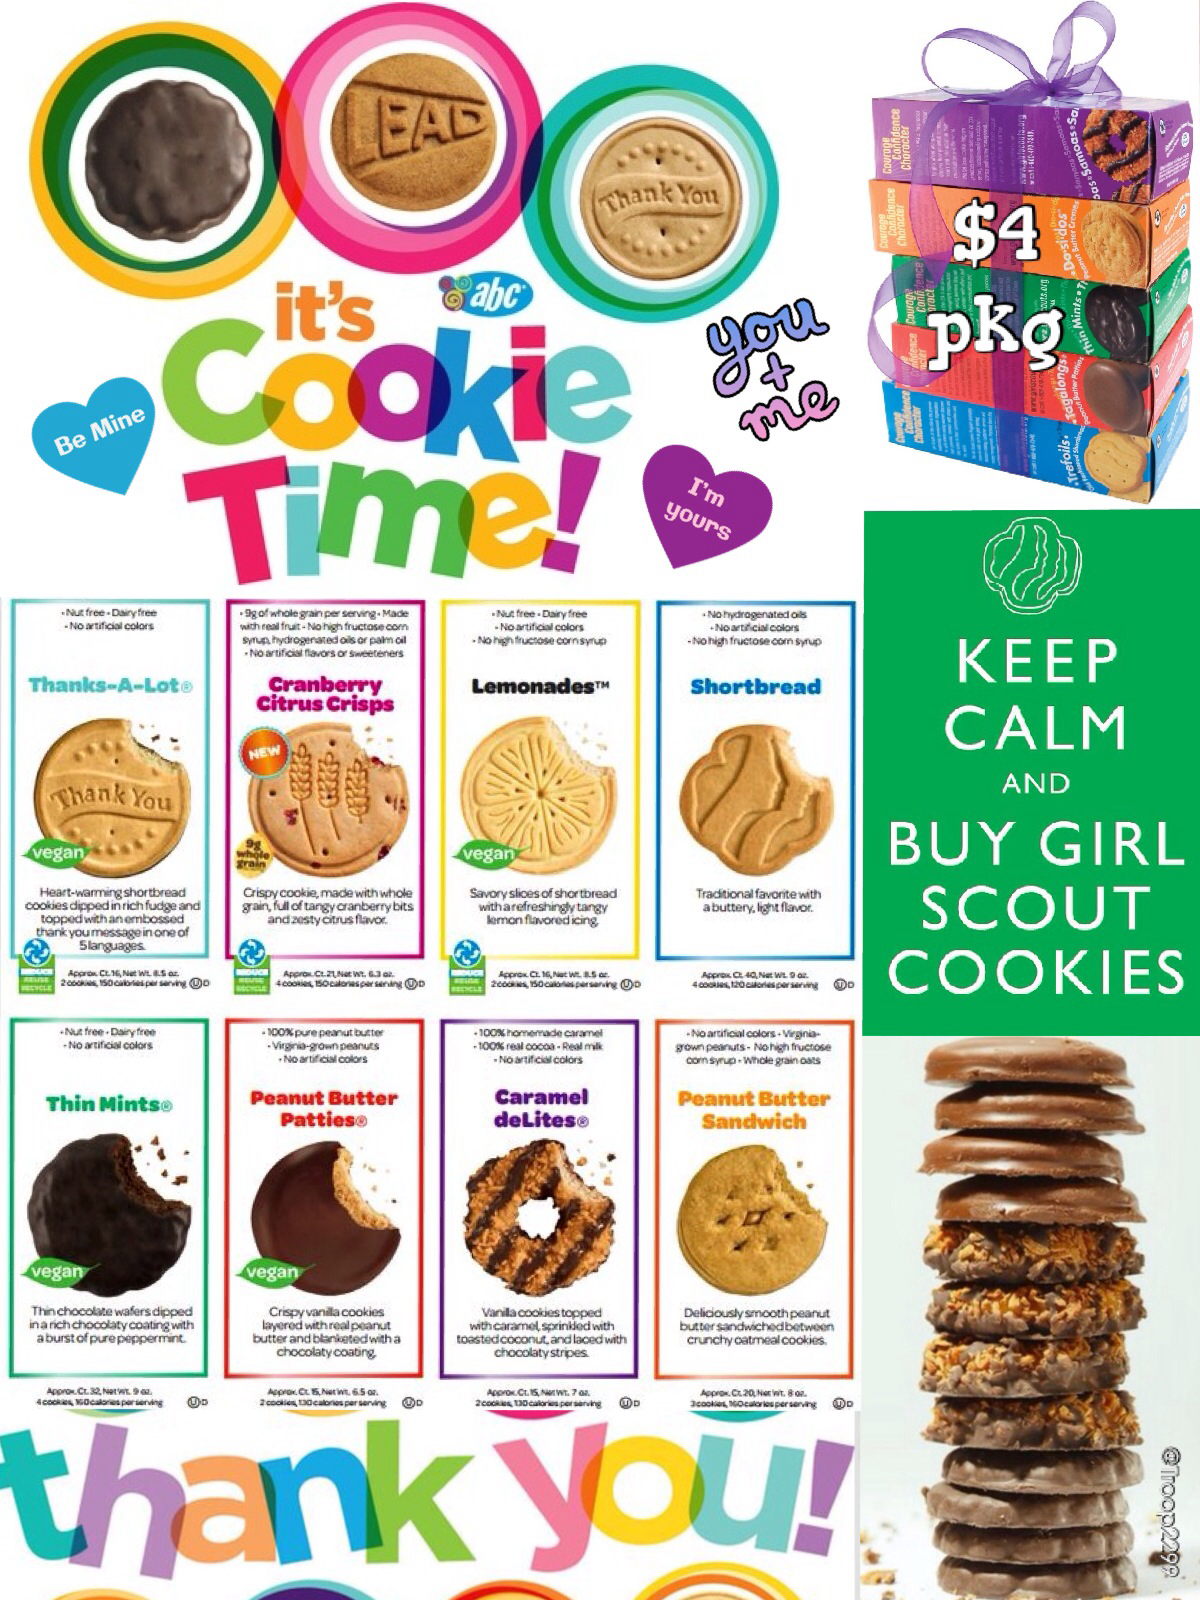 2014 Girl Scout Online Cookie Order Form   I Made This For My Daisy